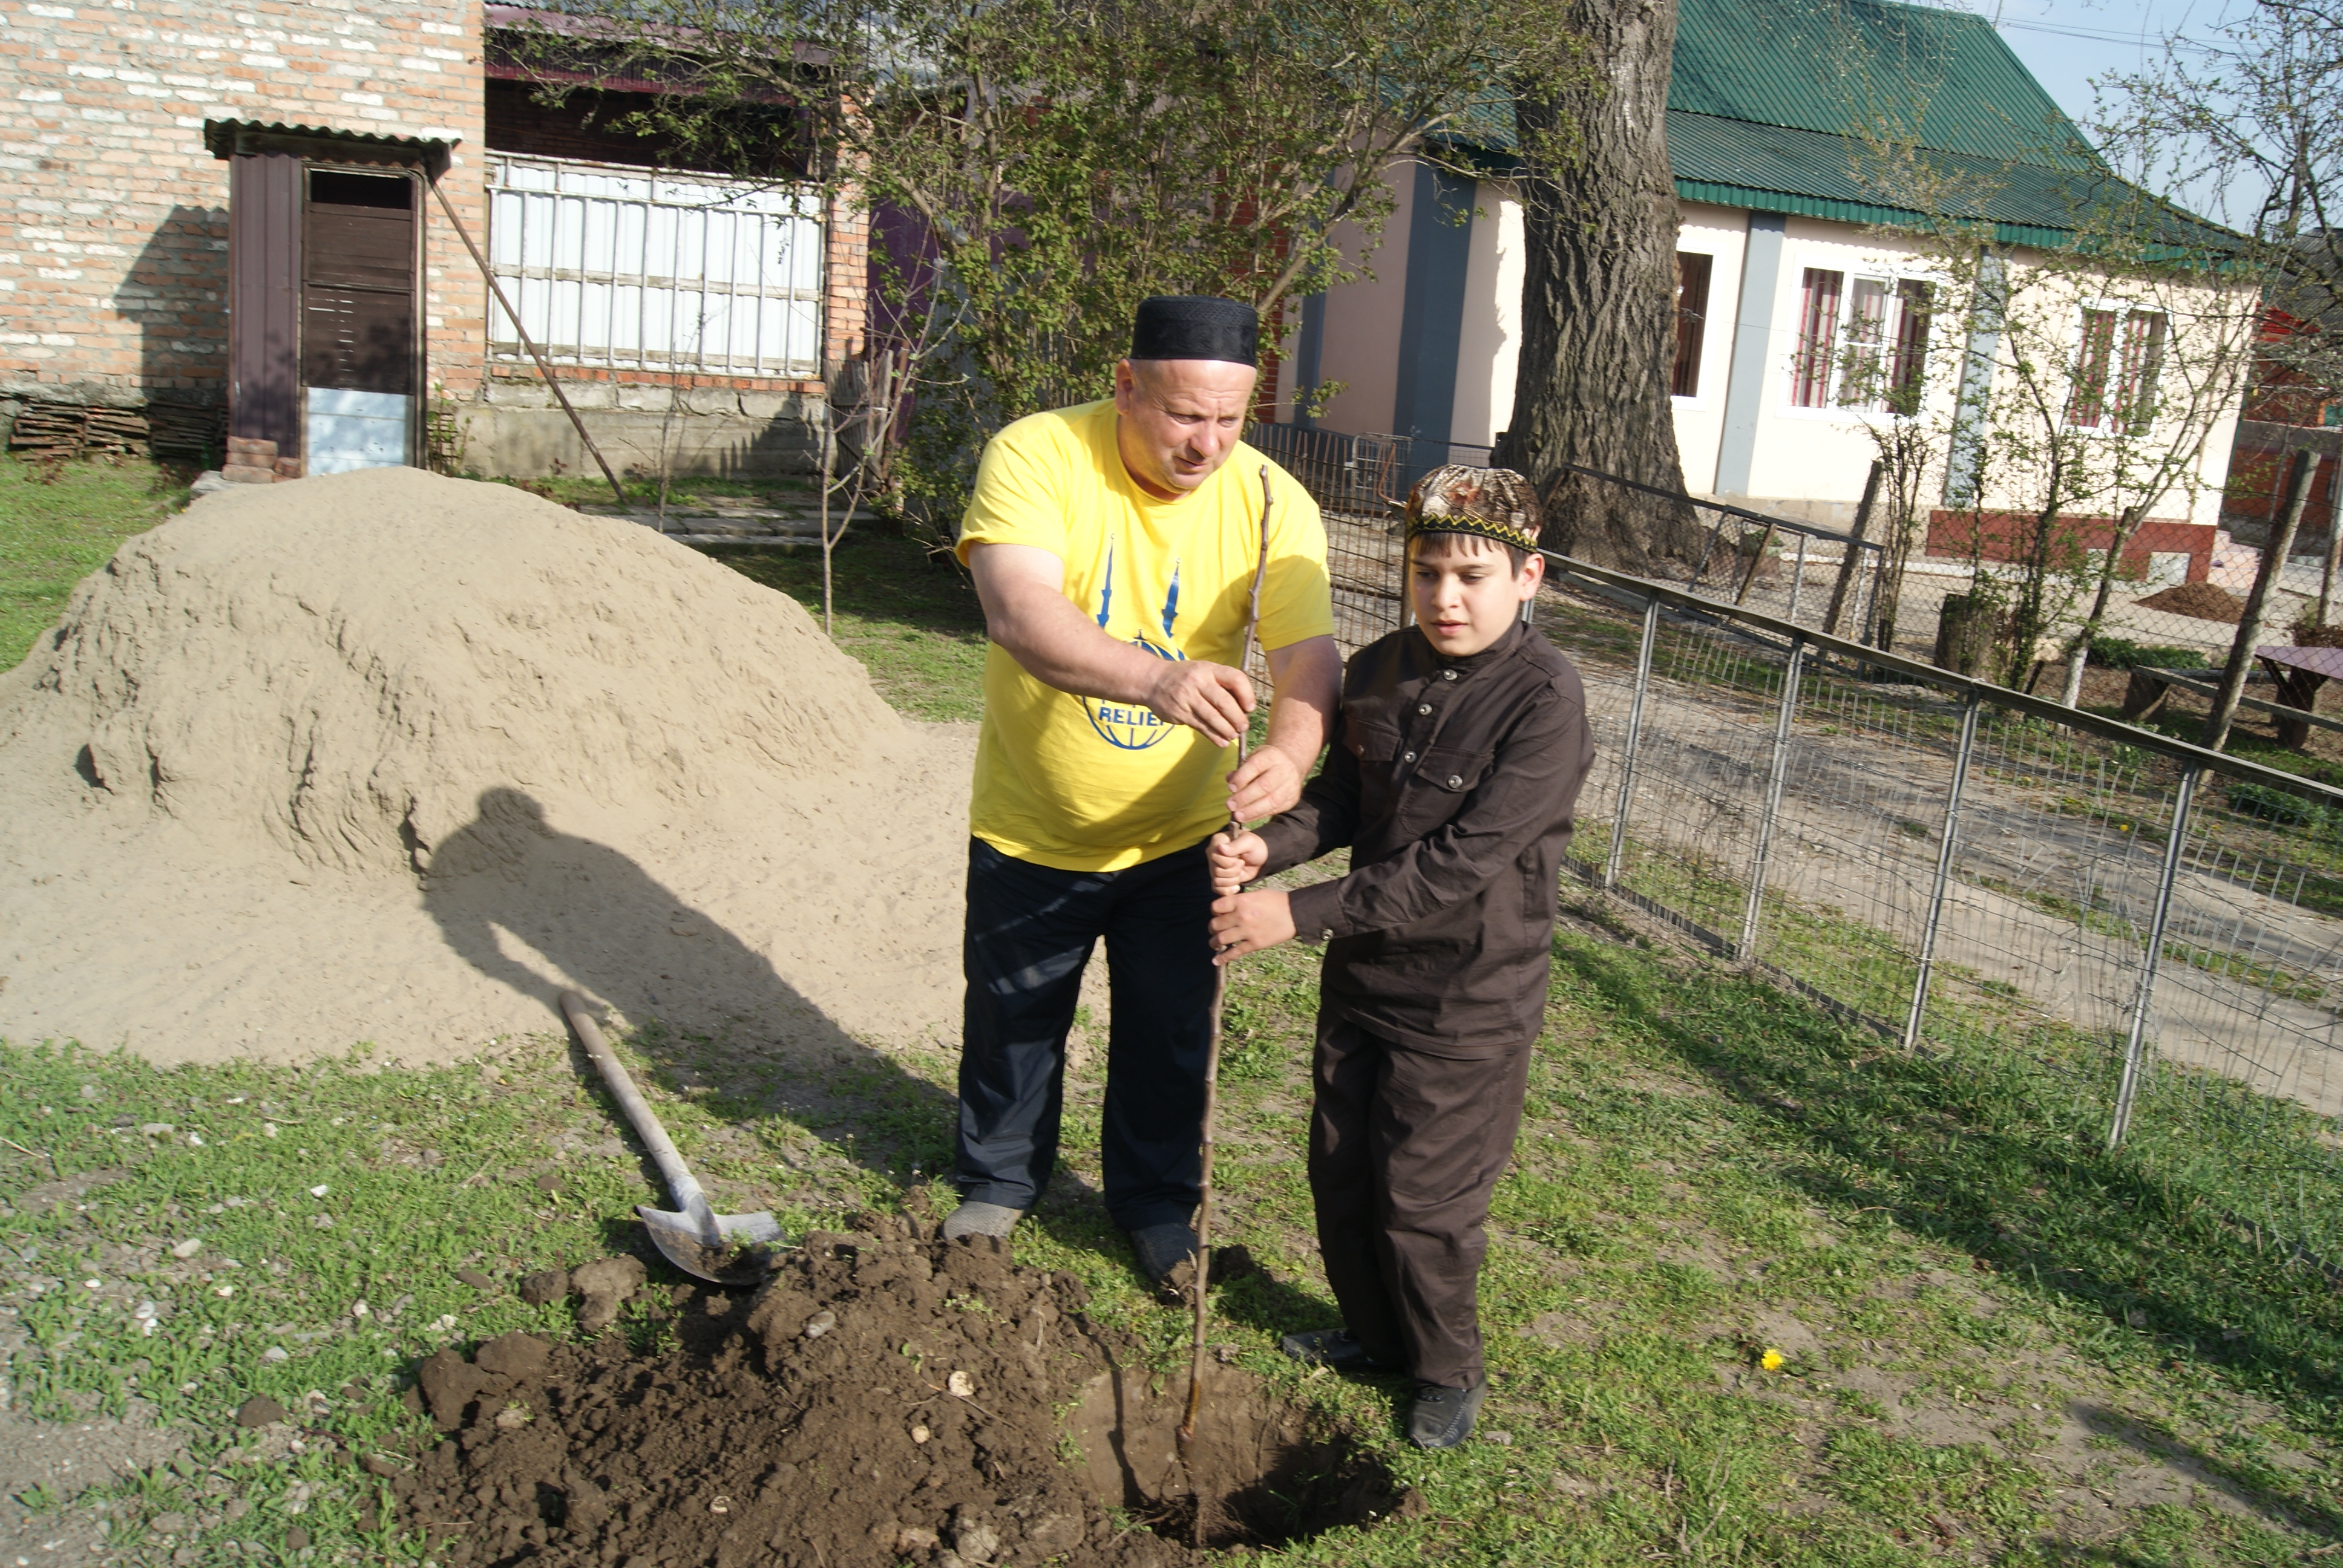 In the framework of the projecvt IRR distributed 1000 trees for the Blind,provided necessary gardening equipment, chemicals and professional consultations for cultivating various fruit trees. Rasul Gasiev,11, lives in Grozny, he is a beneficiary of the project. Rasul is blind since he fell down on back when he was 3.Rasul received some fruit trees to plant in his yard.